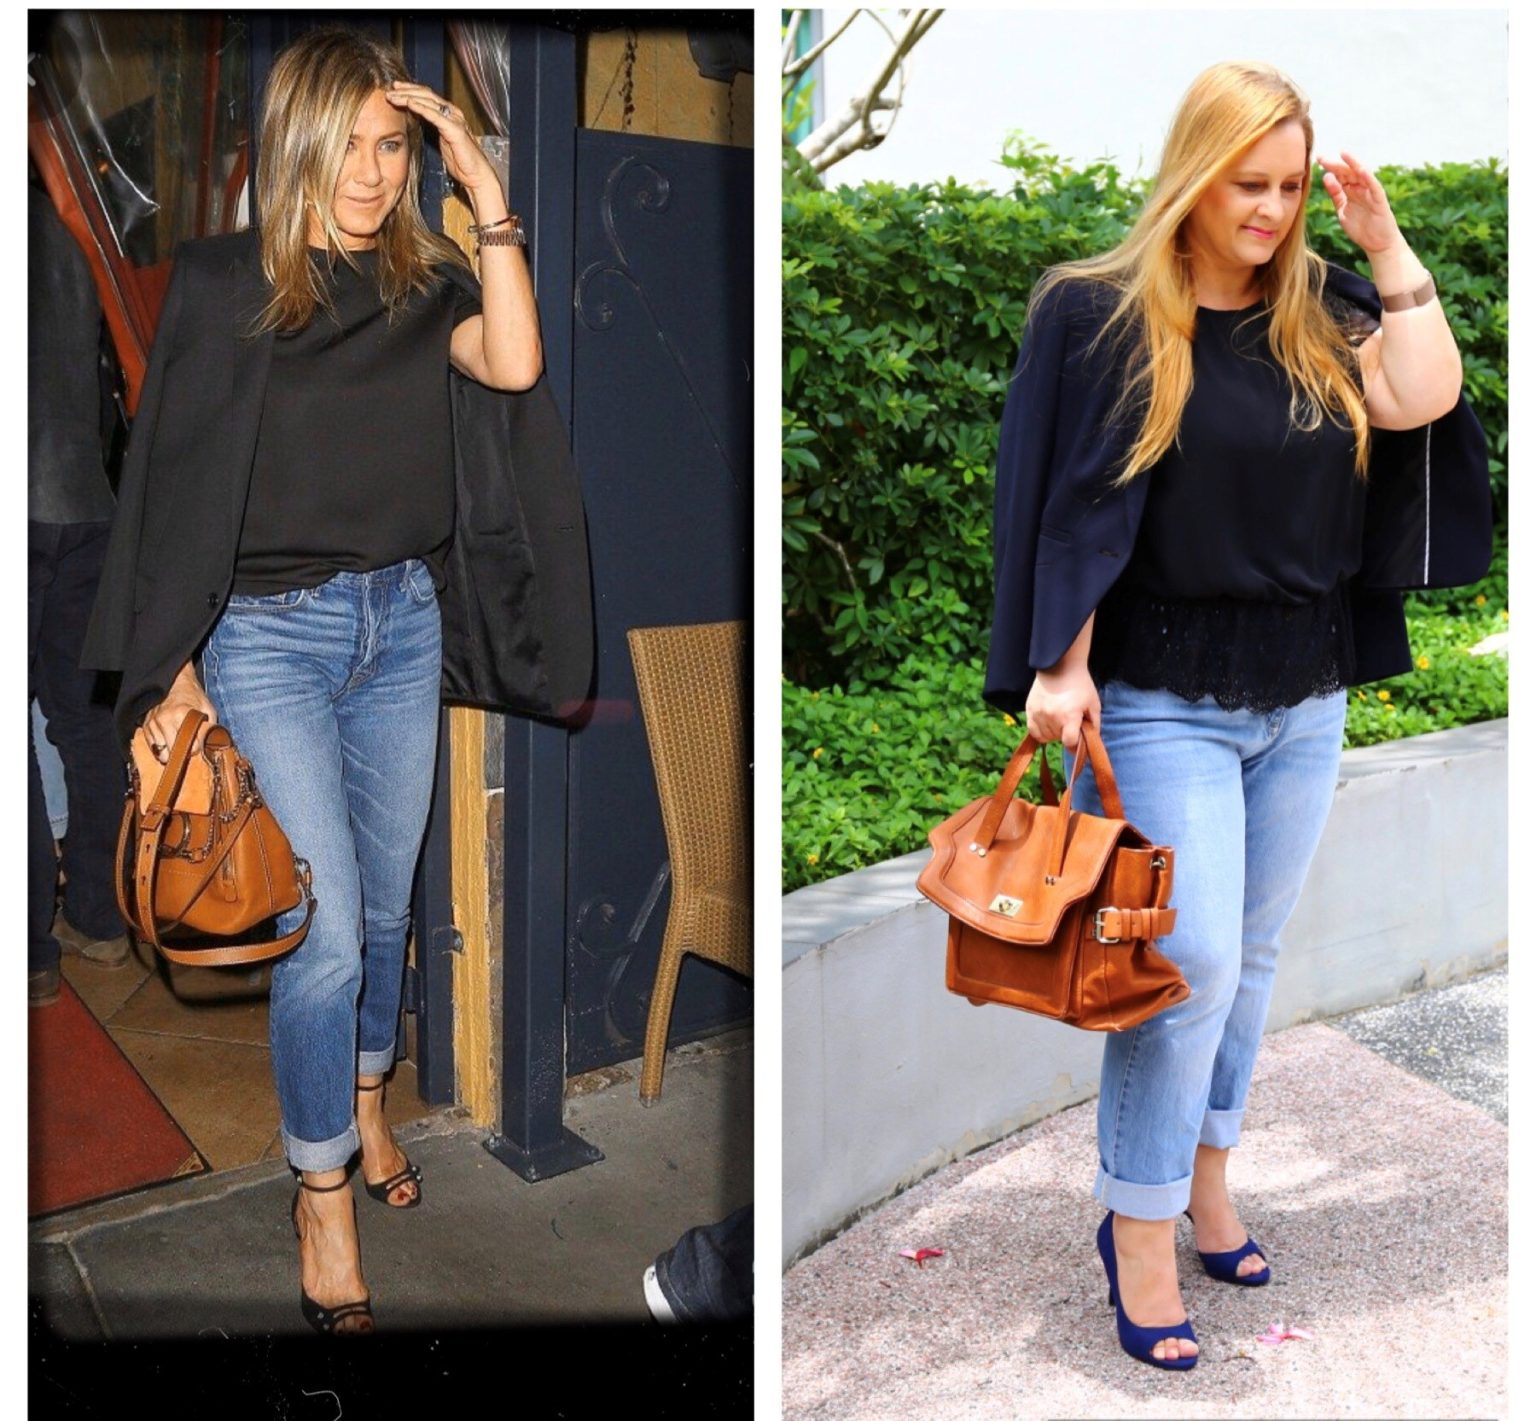 Jennifer Aniston's casual chic outfit of jeans, jacket and tan bag is successfully copied by blogger Anna from GlamAdventure